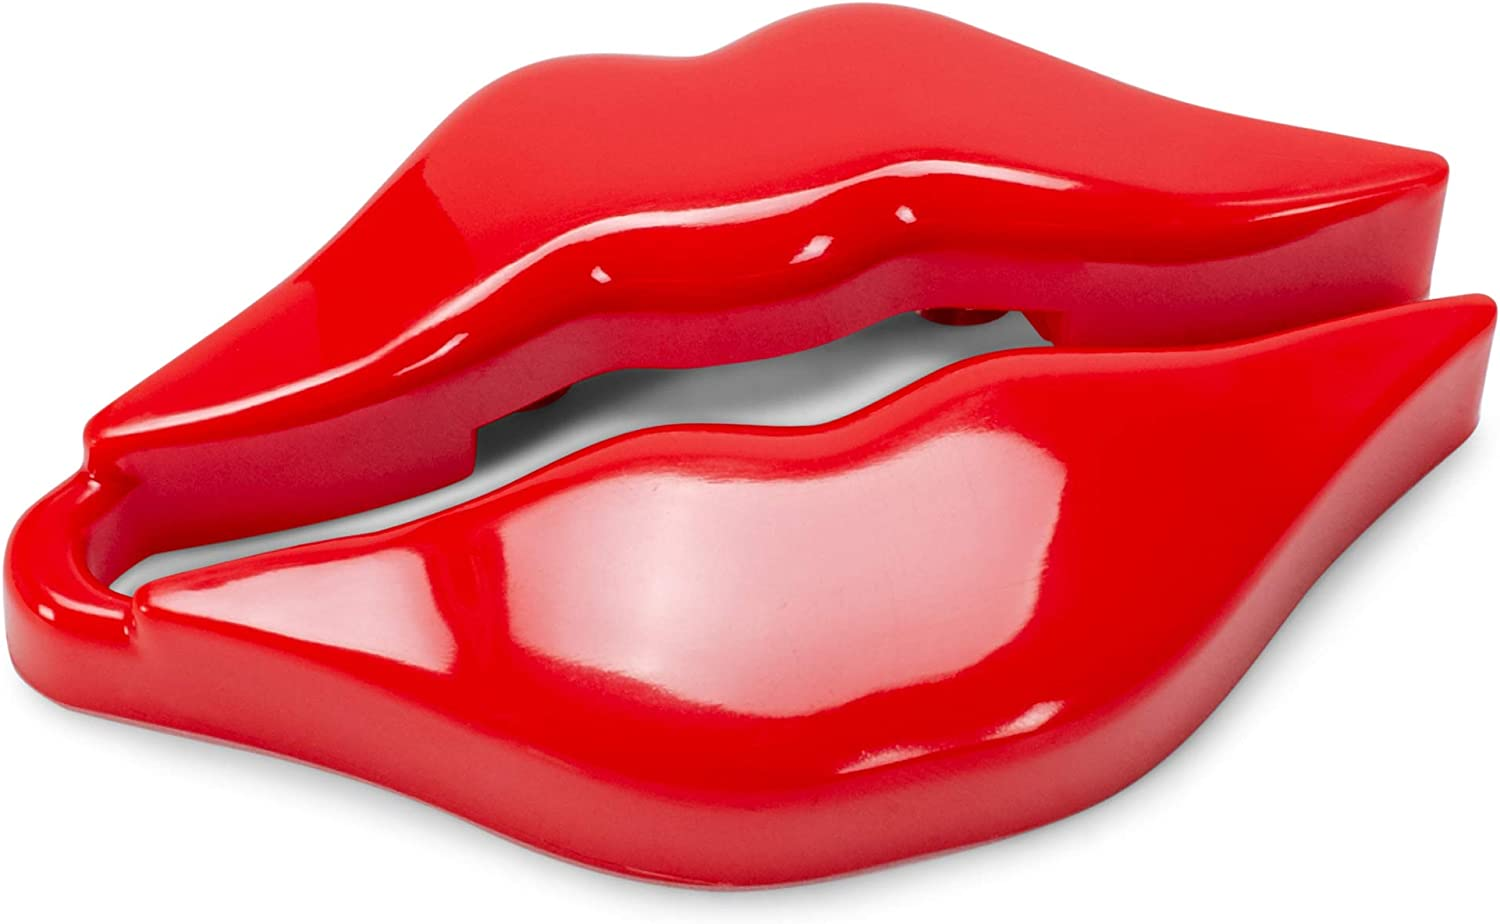 Cork Pops Hot Lips 4-Blade 4 x 2 Refrigerator Magnet Wine Bottle Foil Cutter